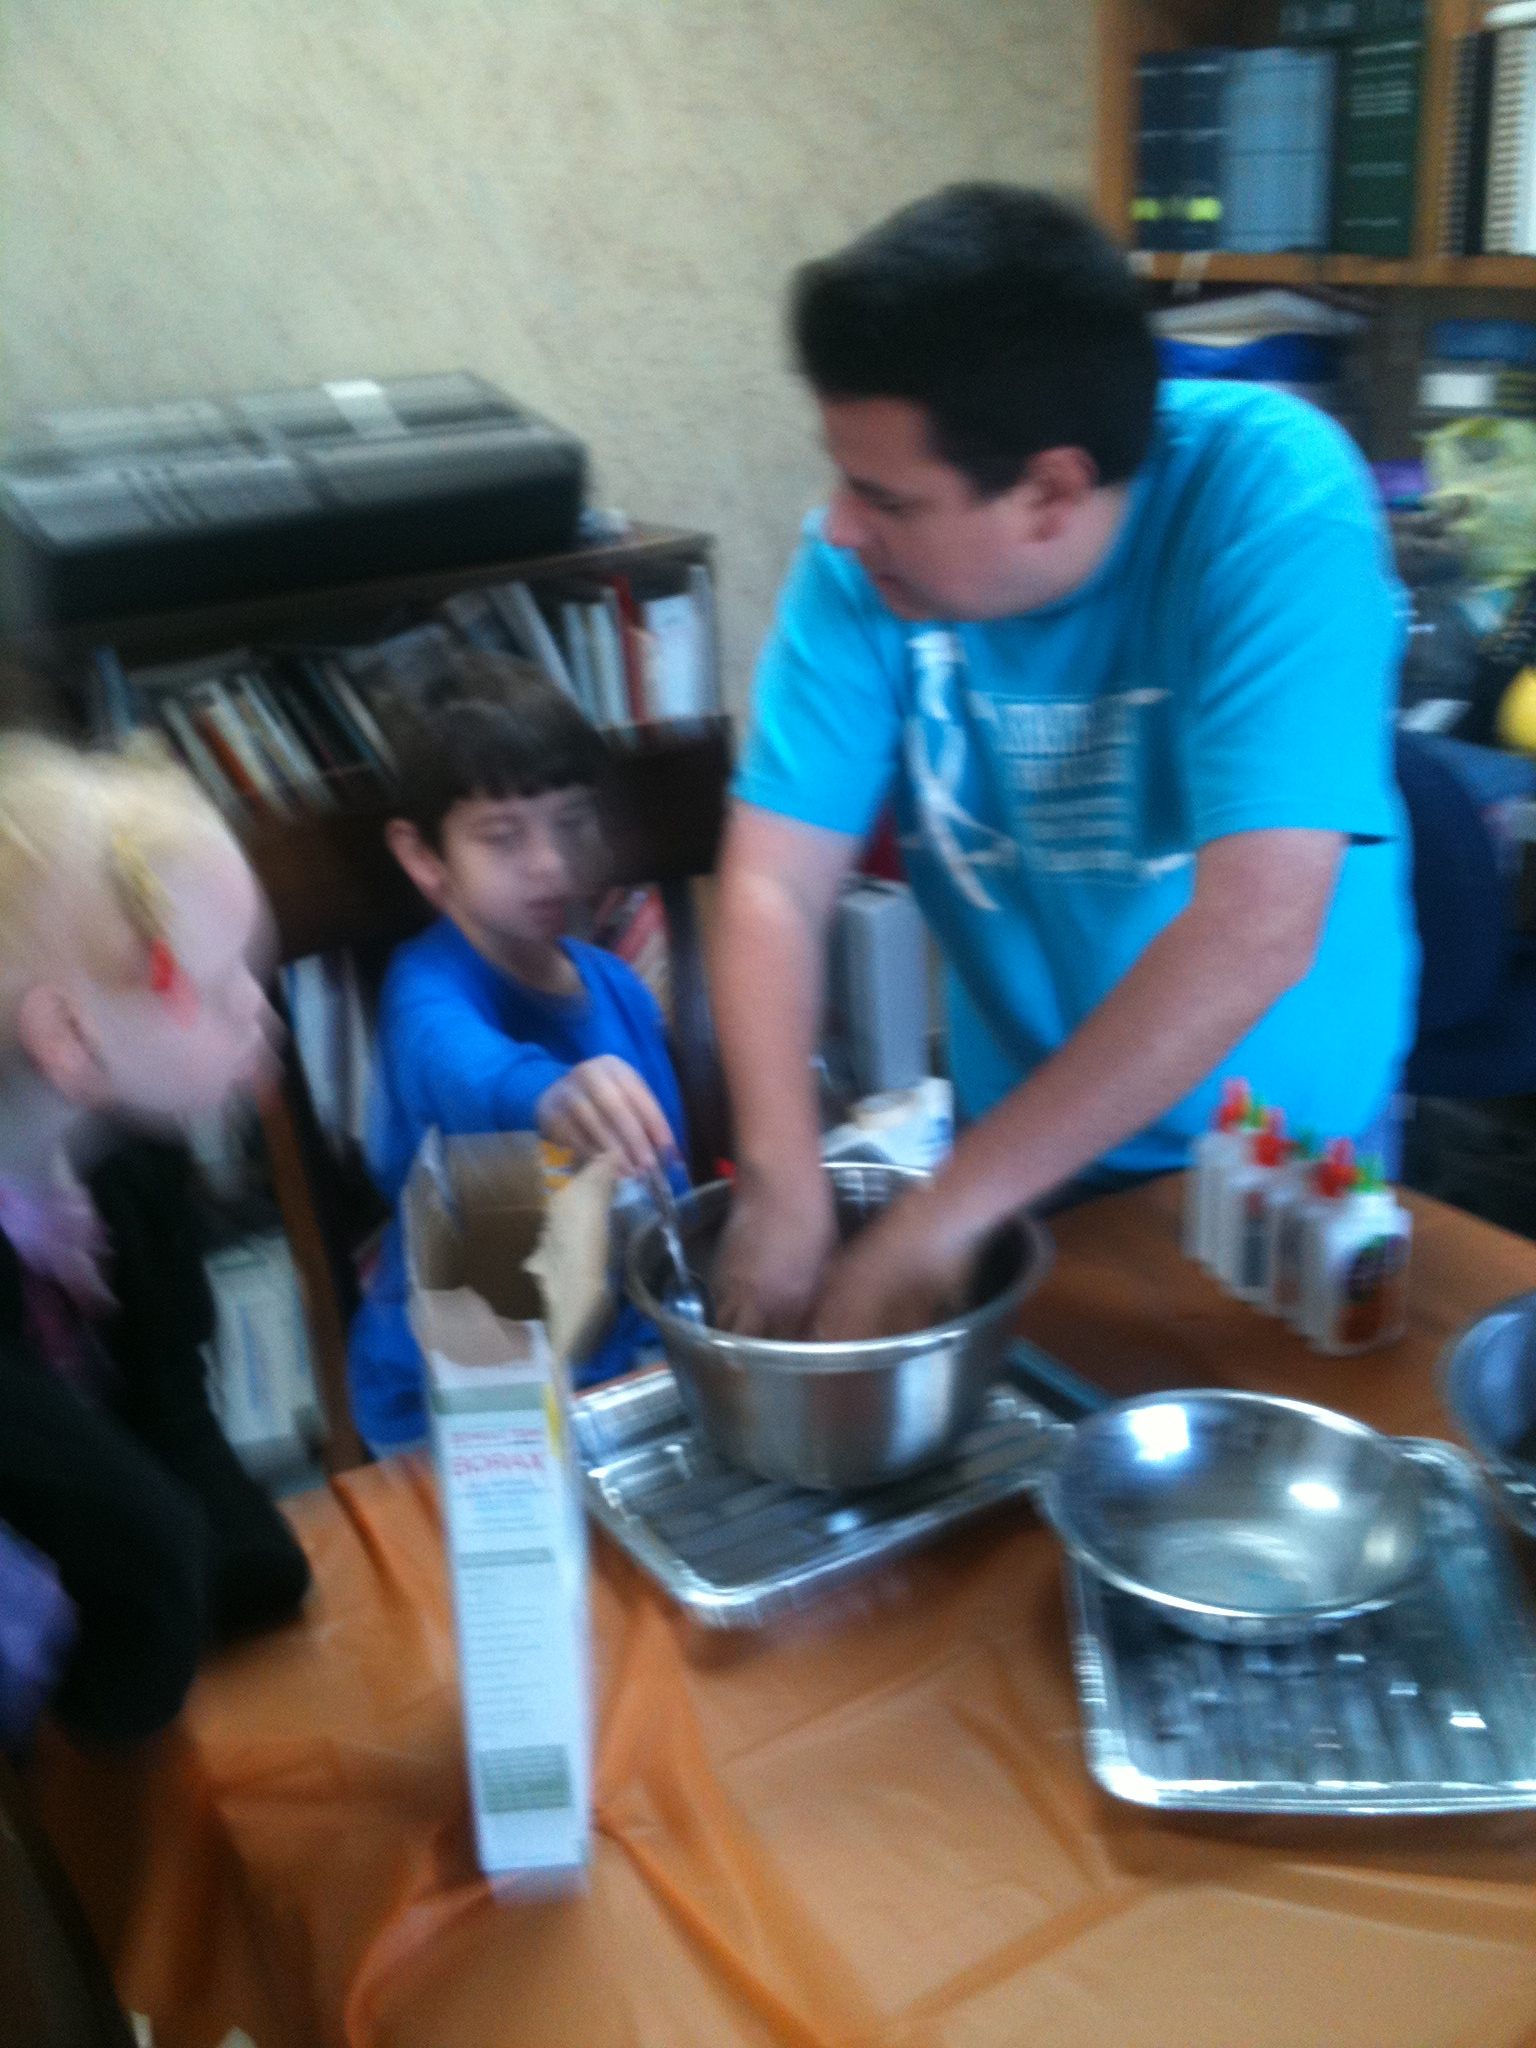 Mr. G leads a science experiment: slime for everyone